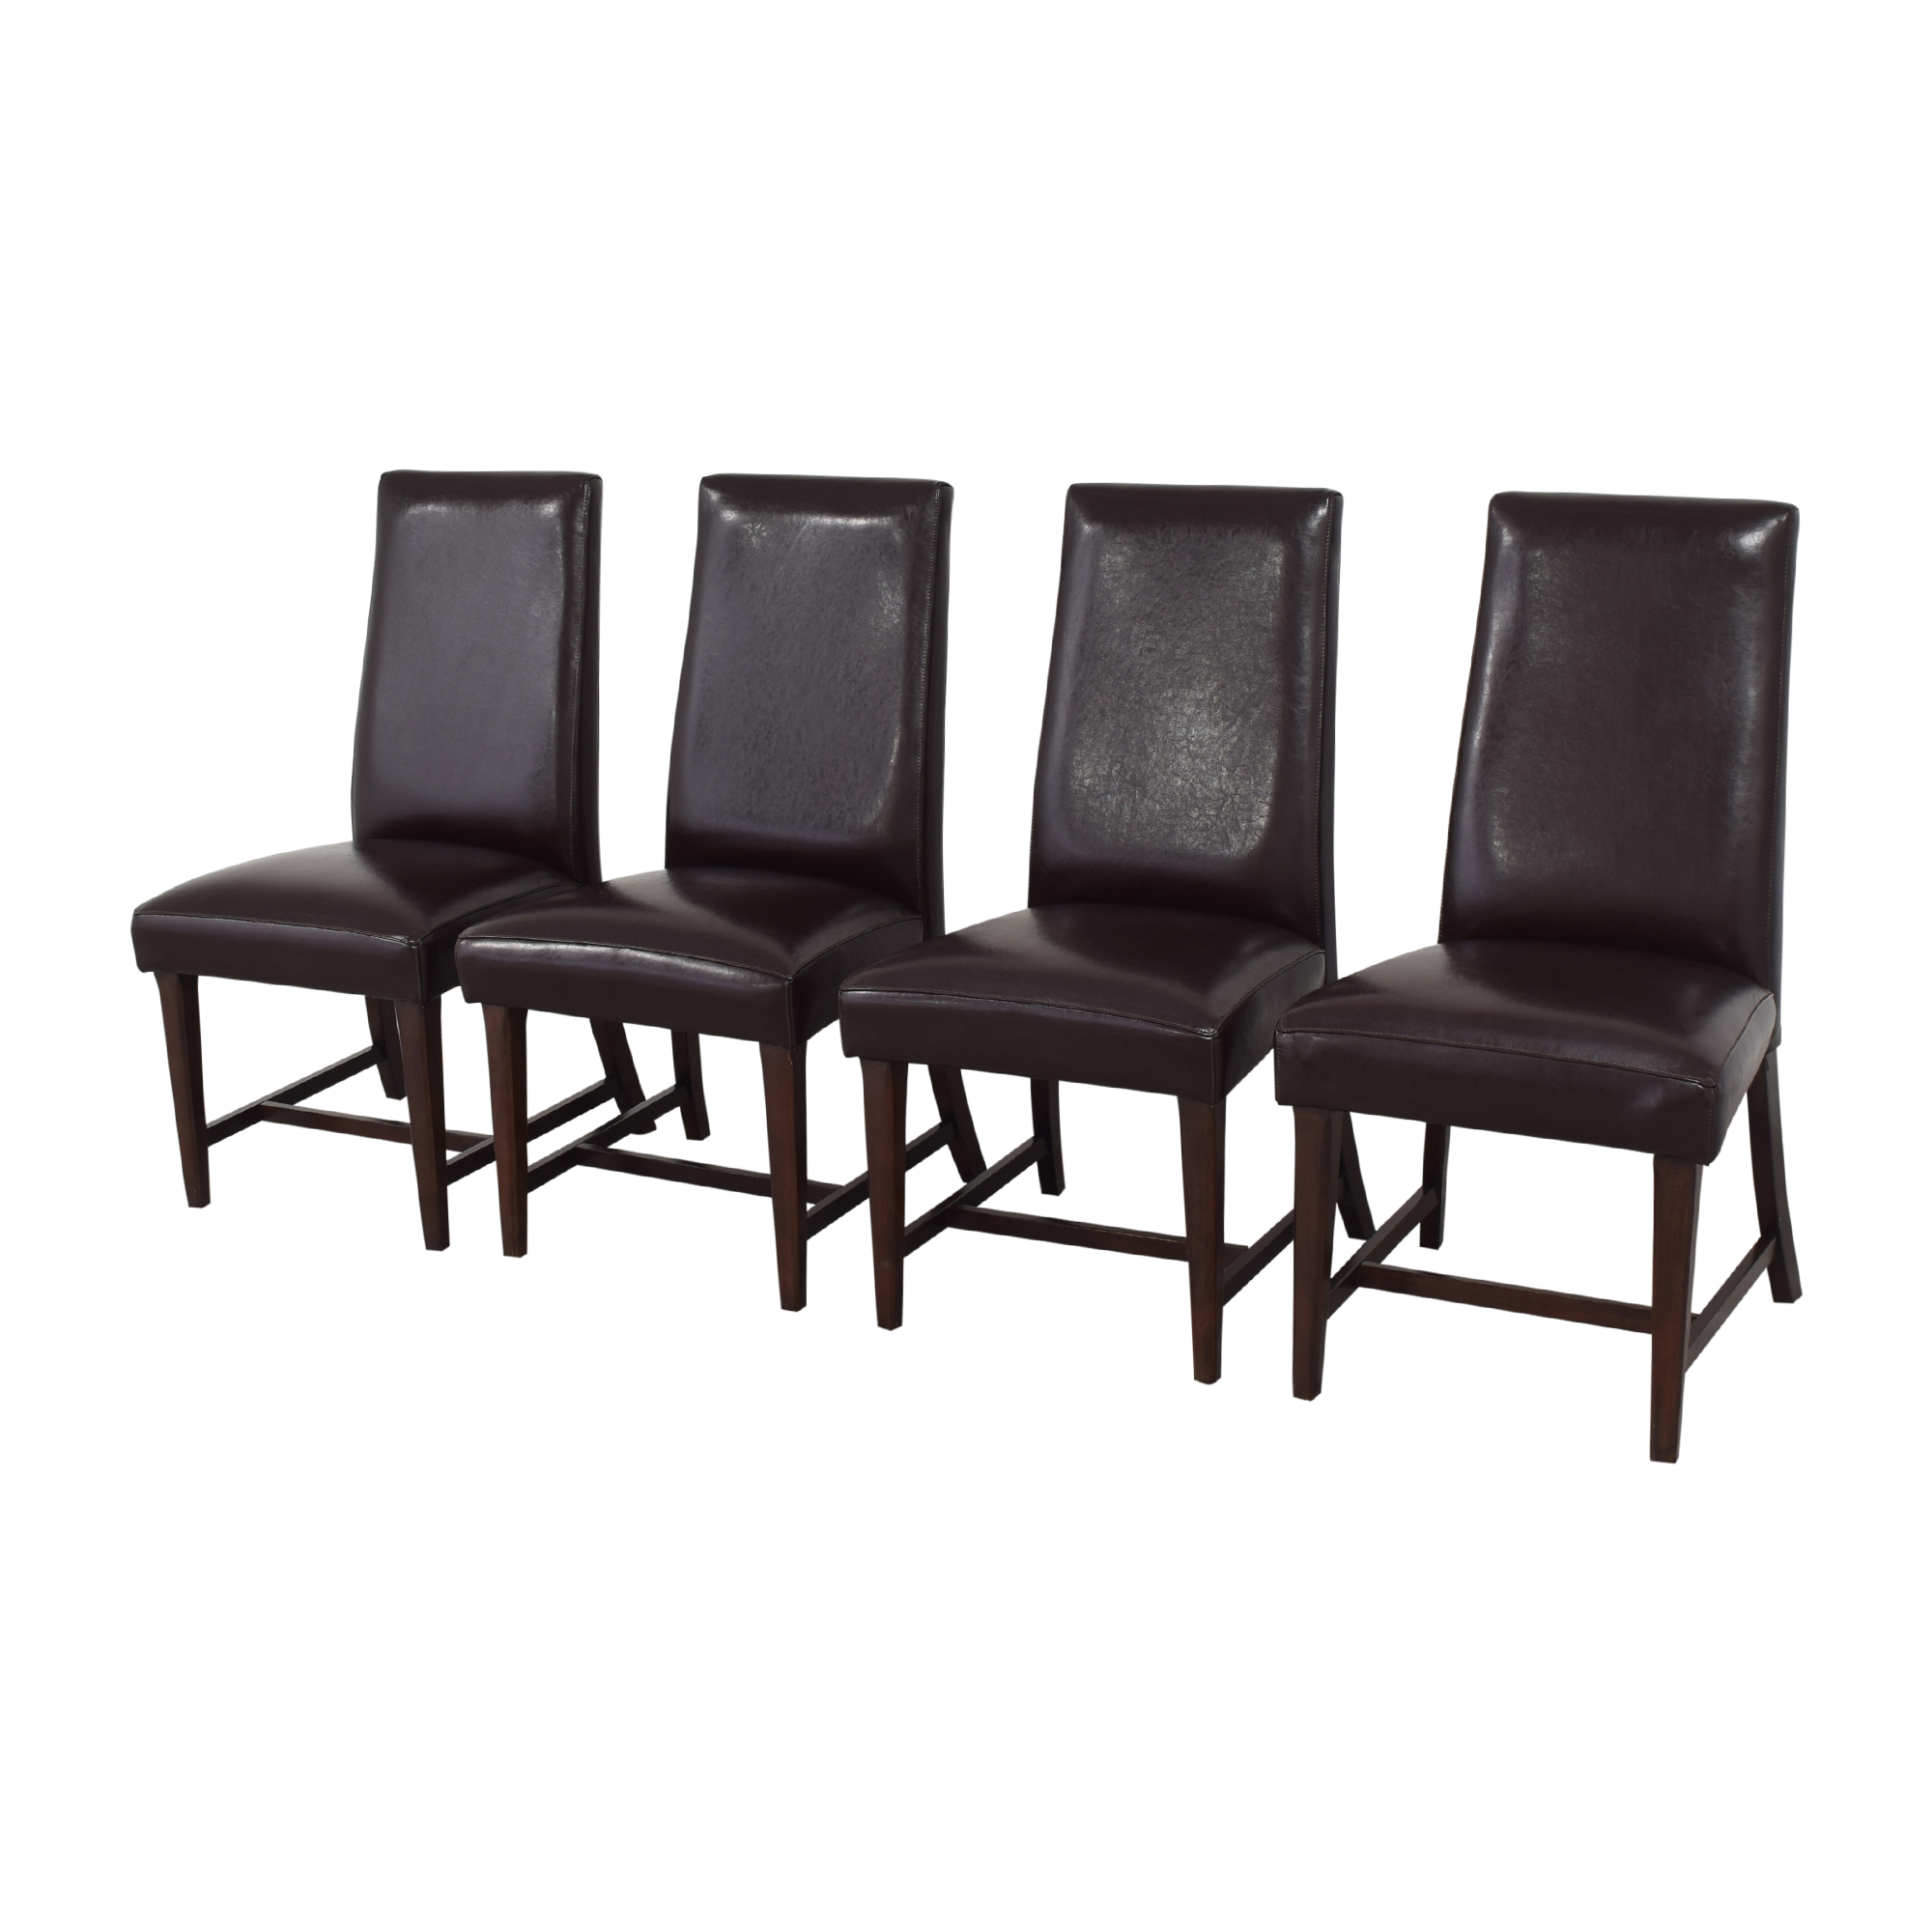 shop Shermag High Back Dining Chairs Shermag